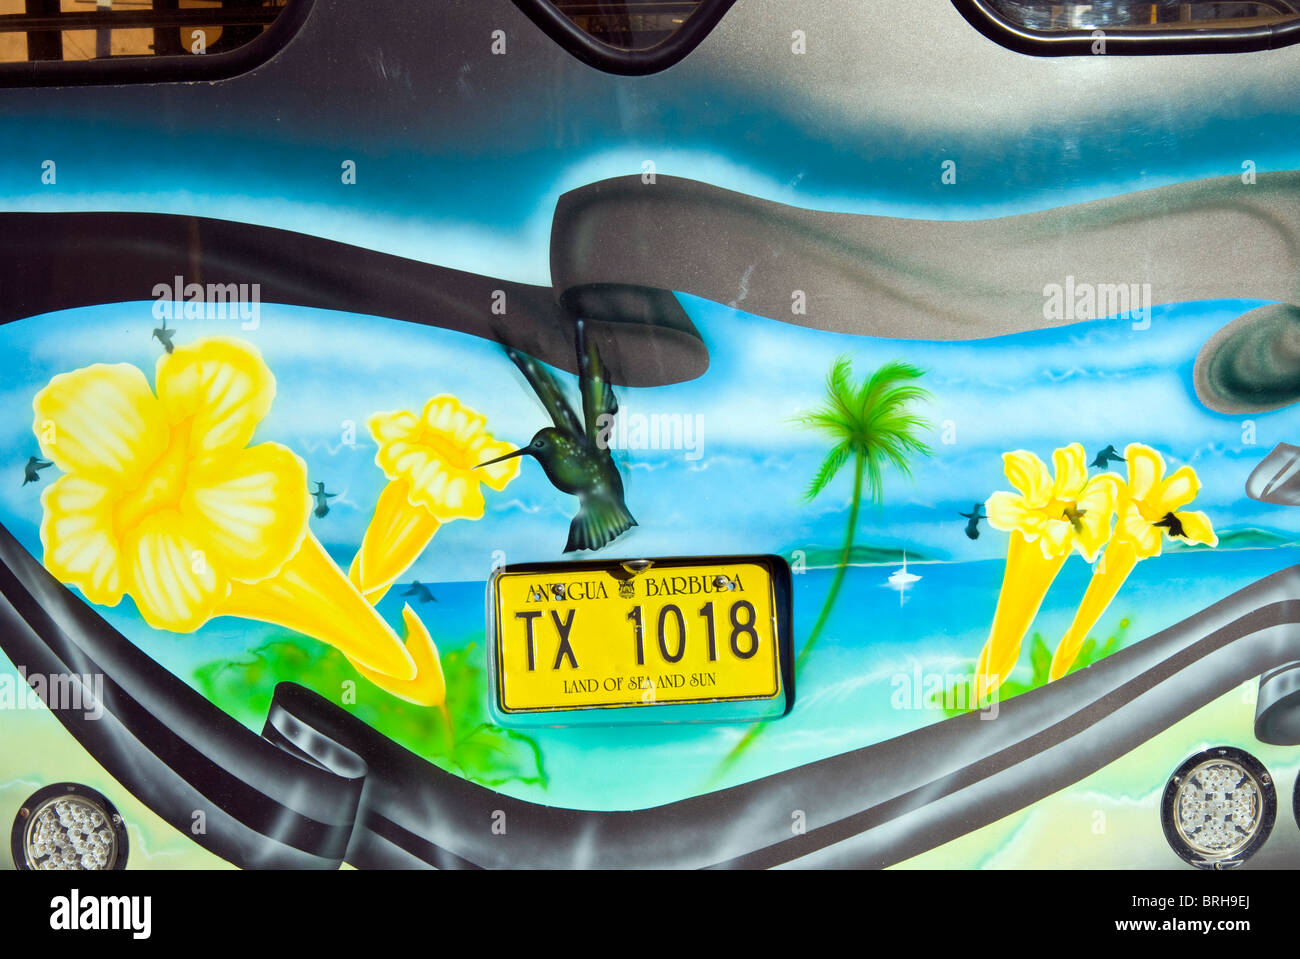 Car Plate, St. John's, Antigua, West Indies, Caribbean, Central America - Stock Image